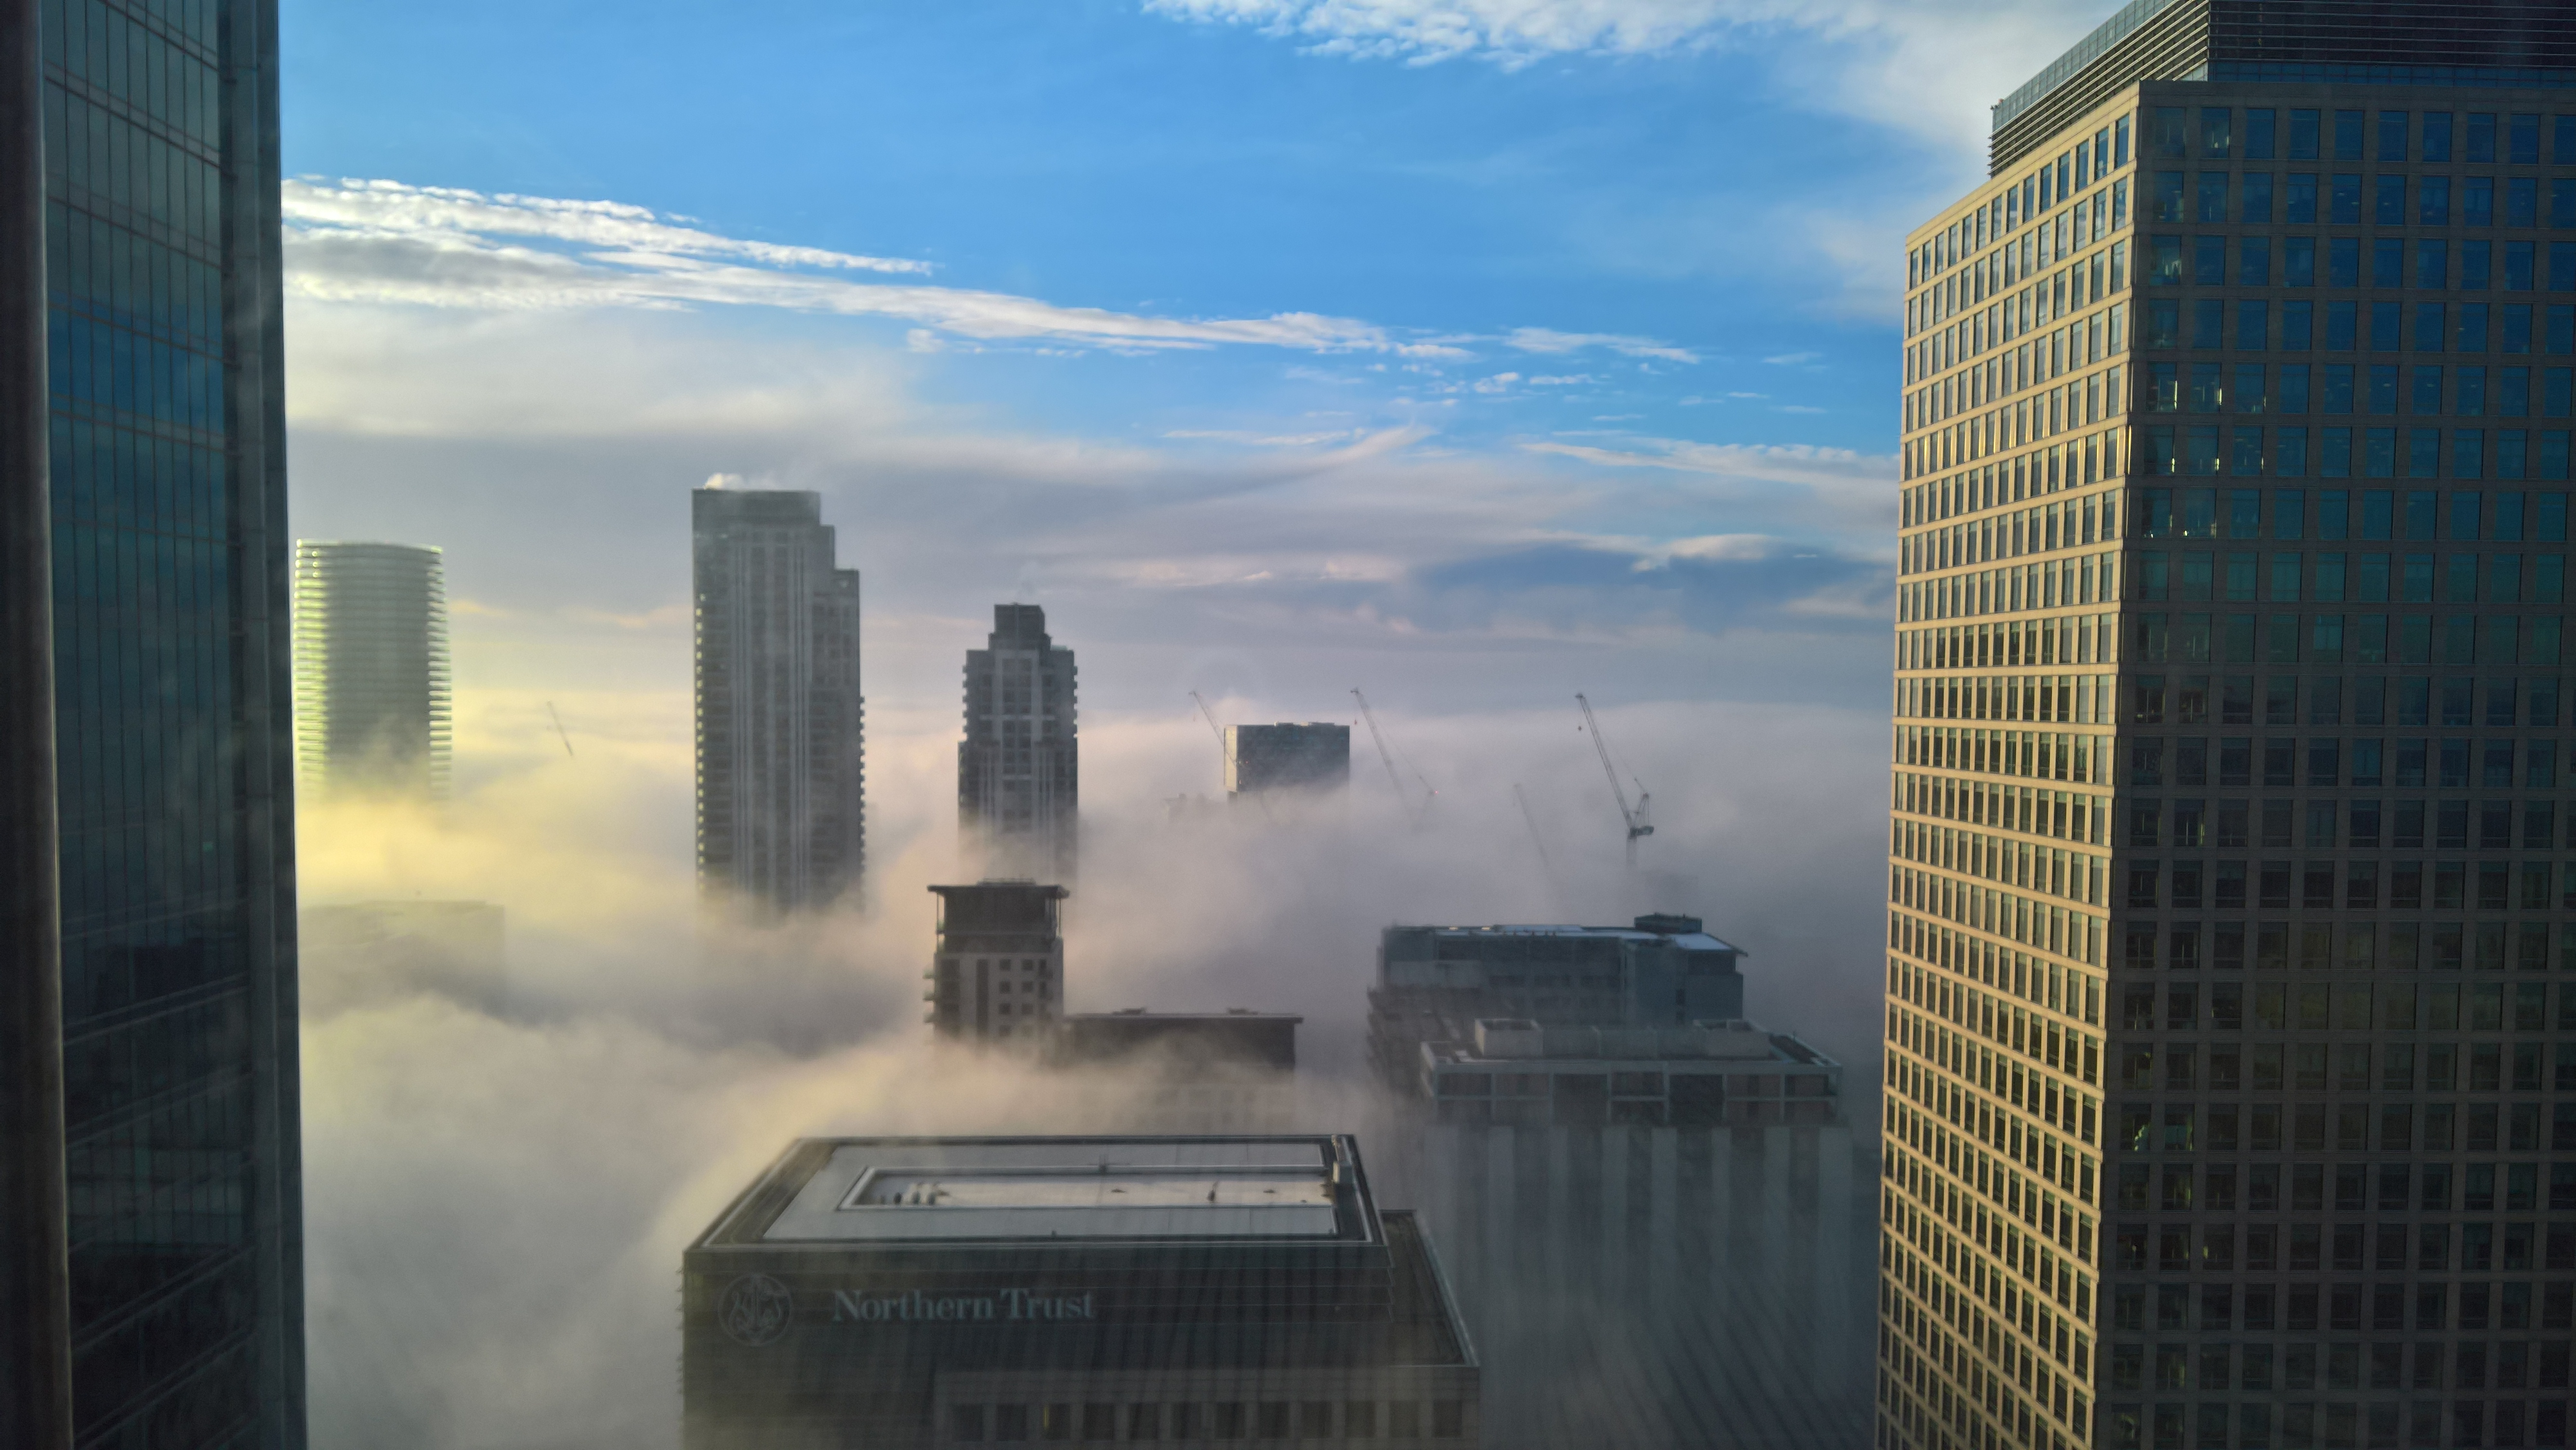 View from Canary Wharf towards the City of London